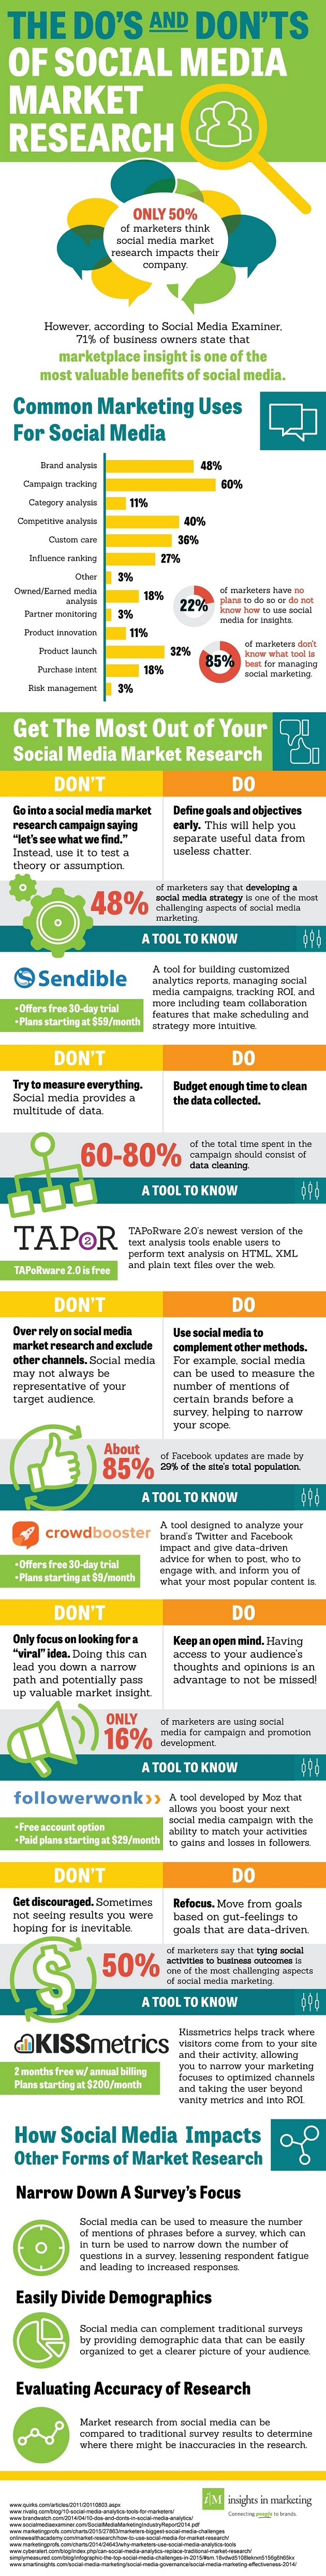 160322-dos-and-donts-of-social-media-research-infographic-preview The Do's and Don'ts of Social Media Research [Infographic]